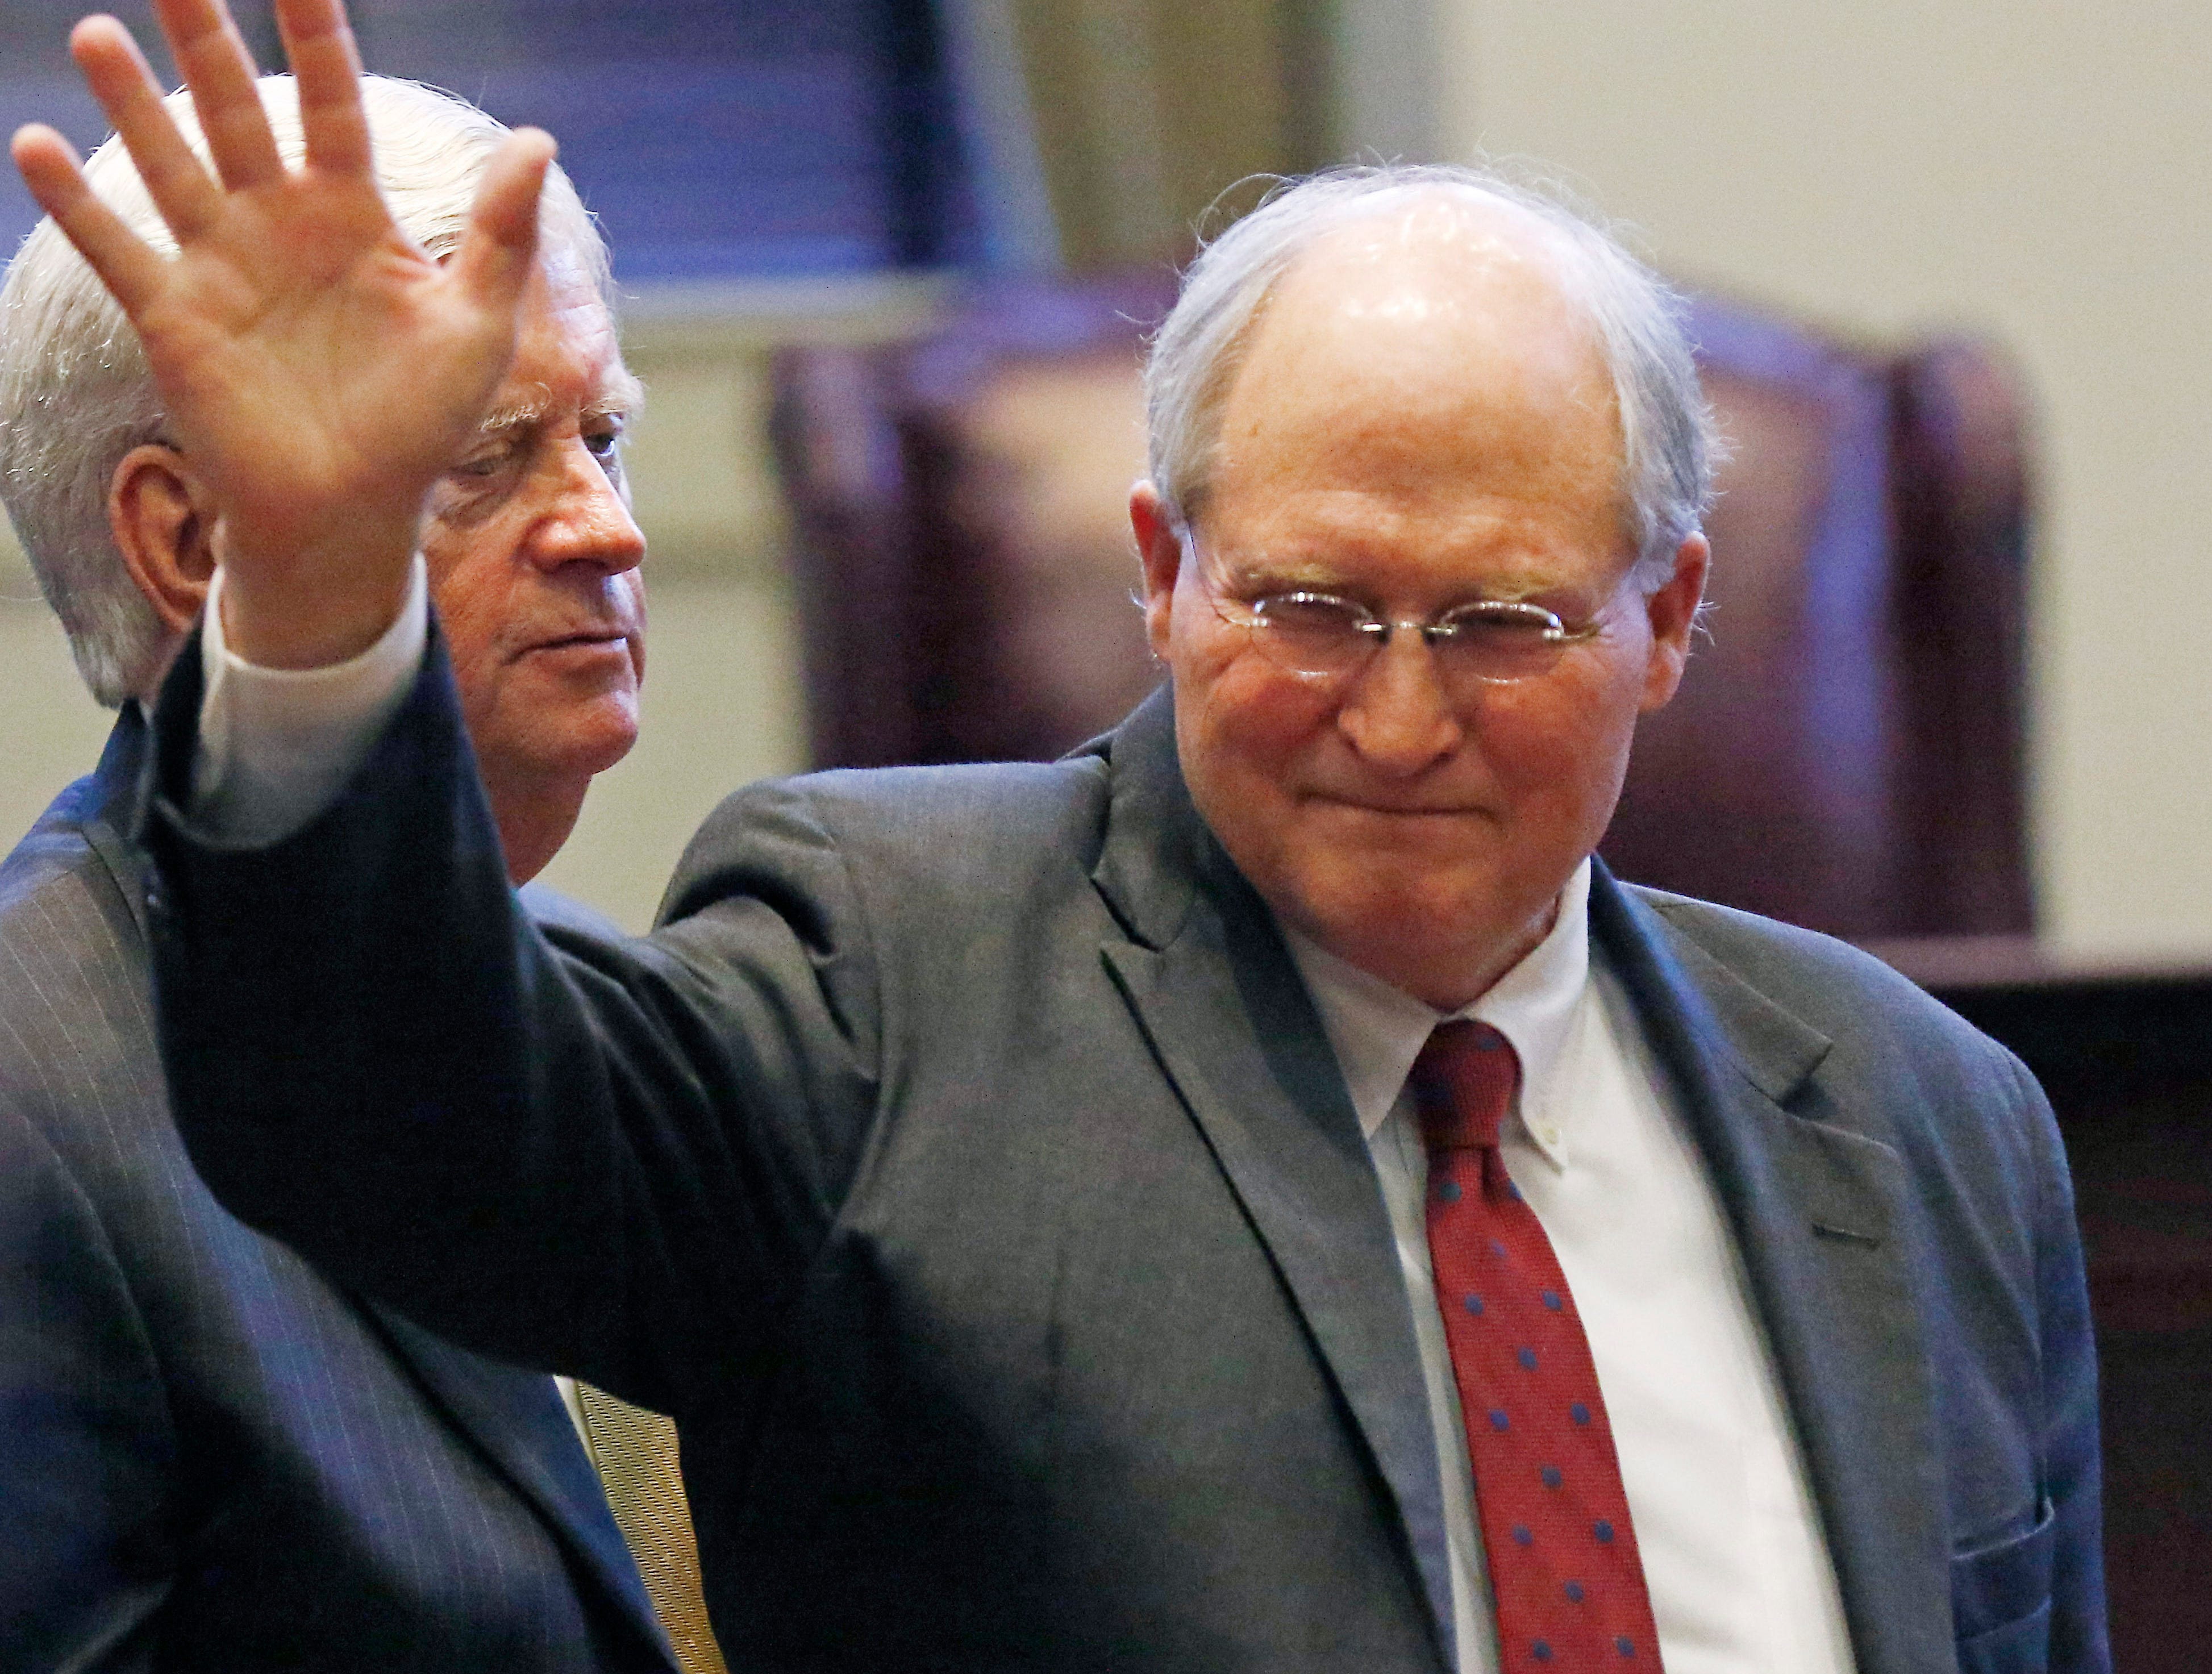 Presiding Justice Michael K. Randolph, left, stands beside state Supreme Court Chief Justice William L. Waller Jr., right, as he acknowledges the applause at his retirement ceremony in the Mississippi Supreme Court chambers in Jackson, Miss., Friday, Jan. 25, 2019. Waller officially retires on January 31 after more than 21 years of service on the Supreme Court and 10 years as Chief Justice. (AP Photo/Rogelio V. Solis)